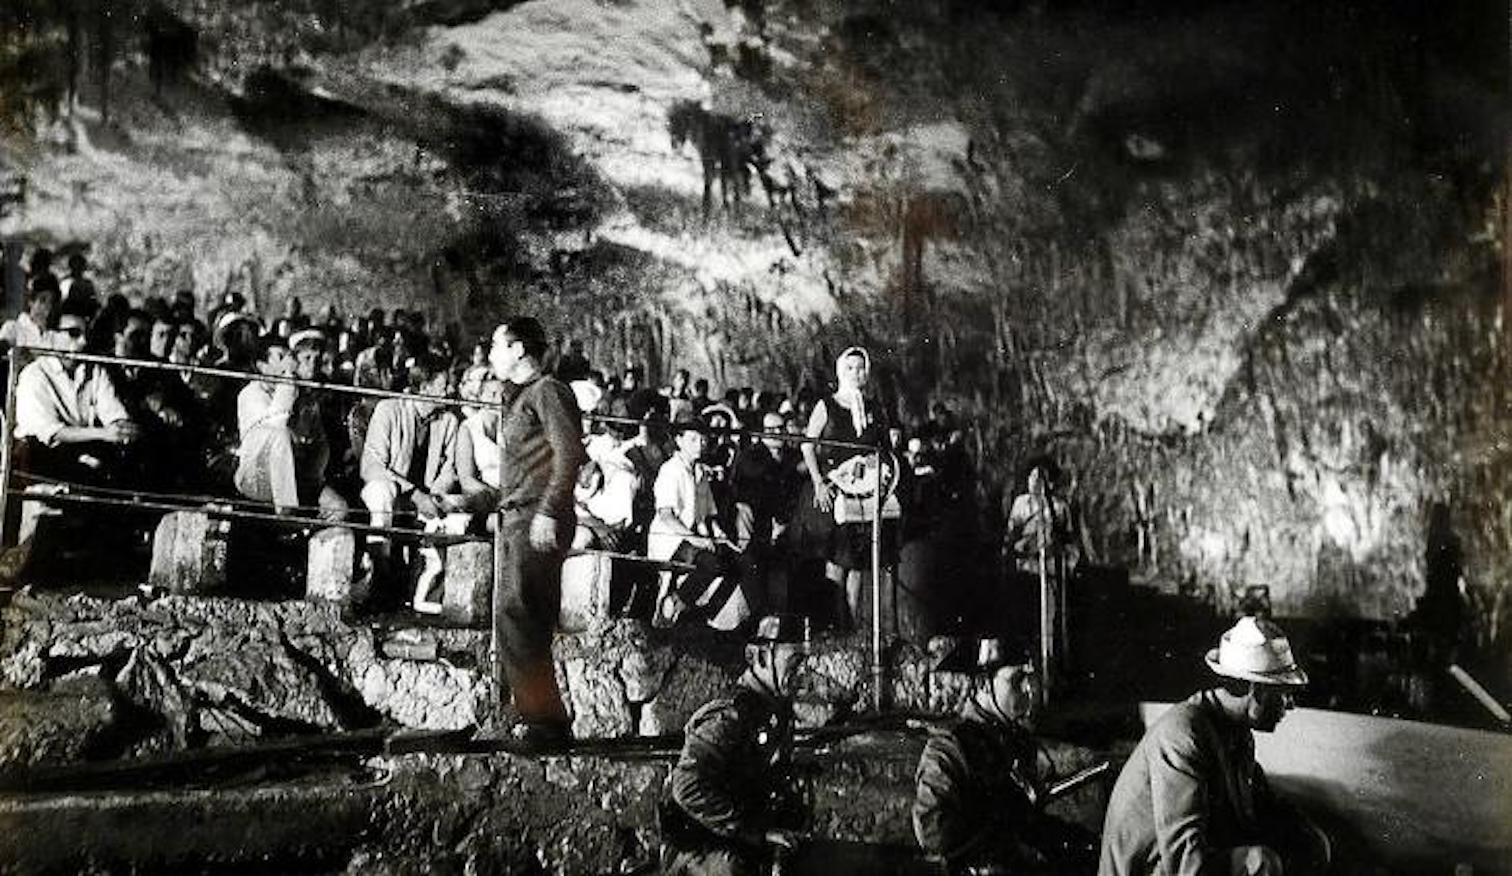 Filming of 'El Verdugo' at the Caves of Drach.